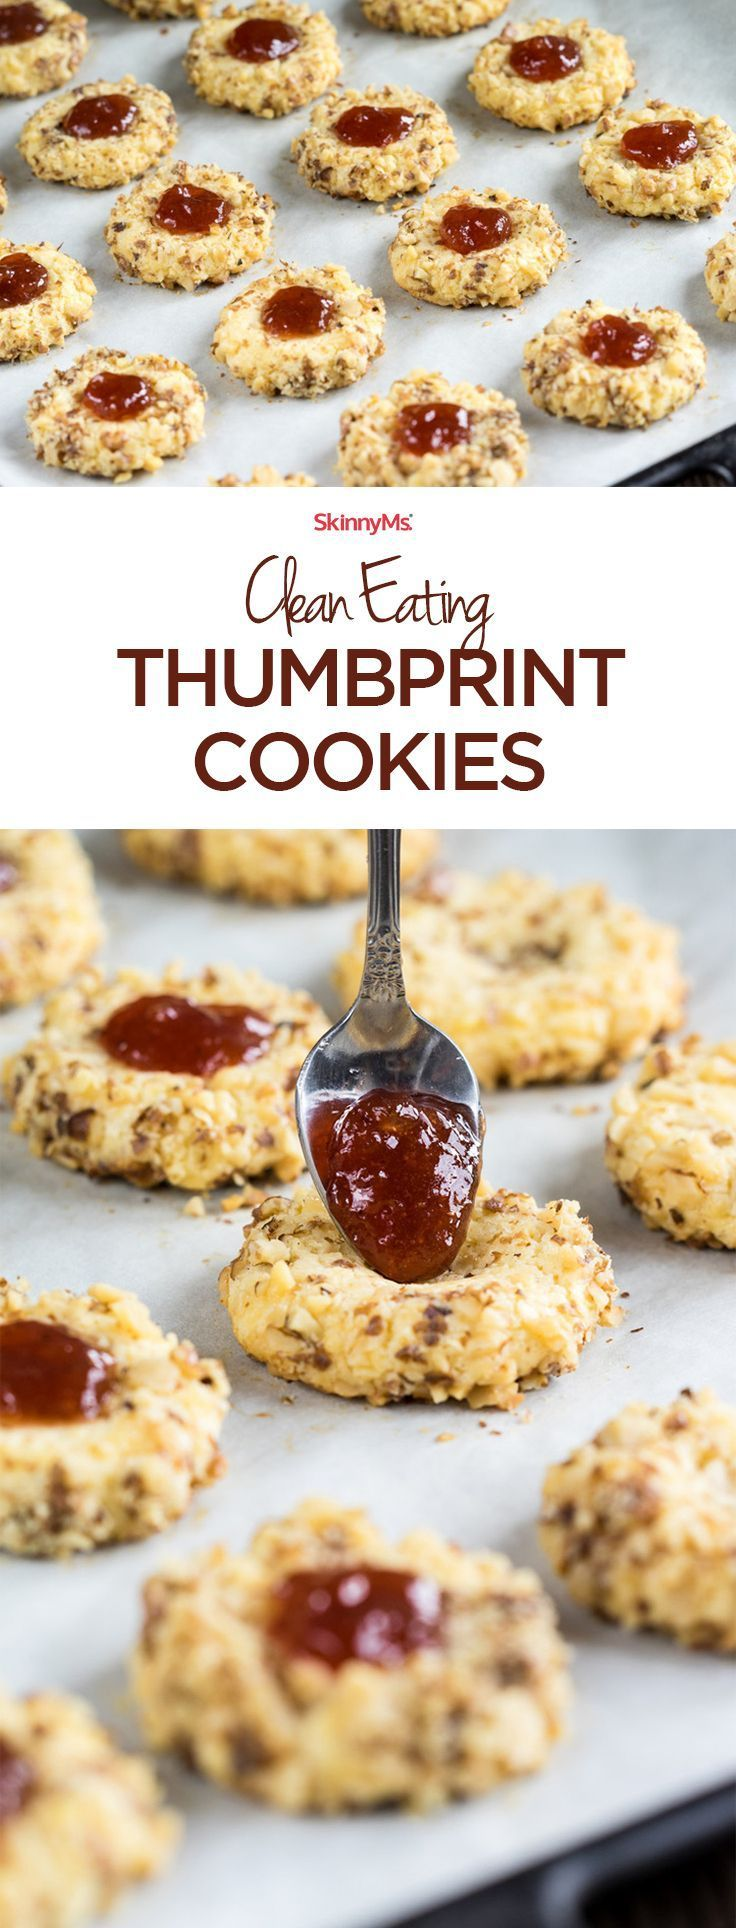 1000+ ideas about Thumbprint Cookies on Pinterest   Cookies, Cookie ...